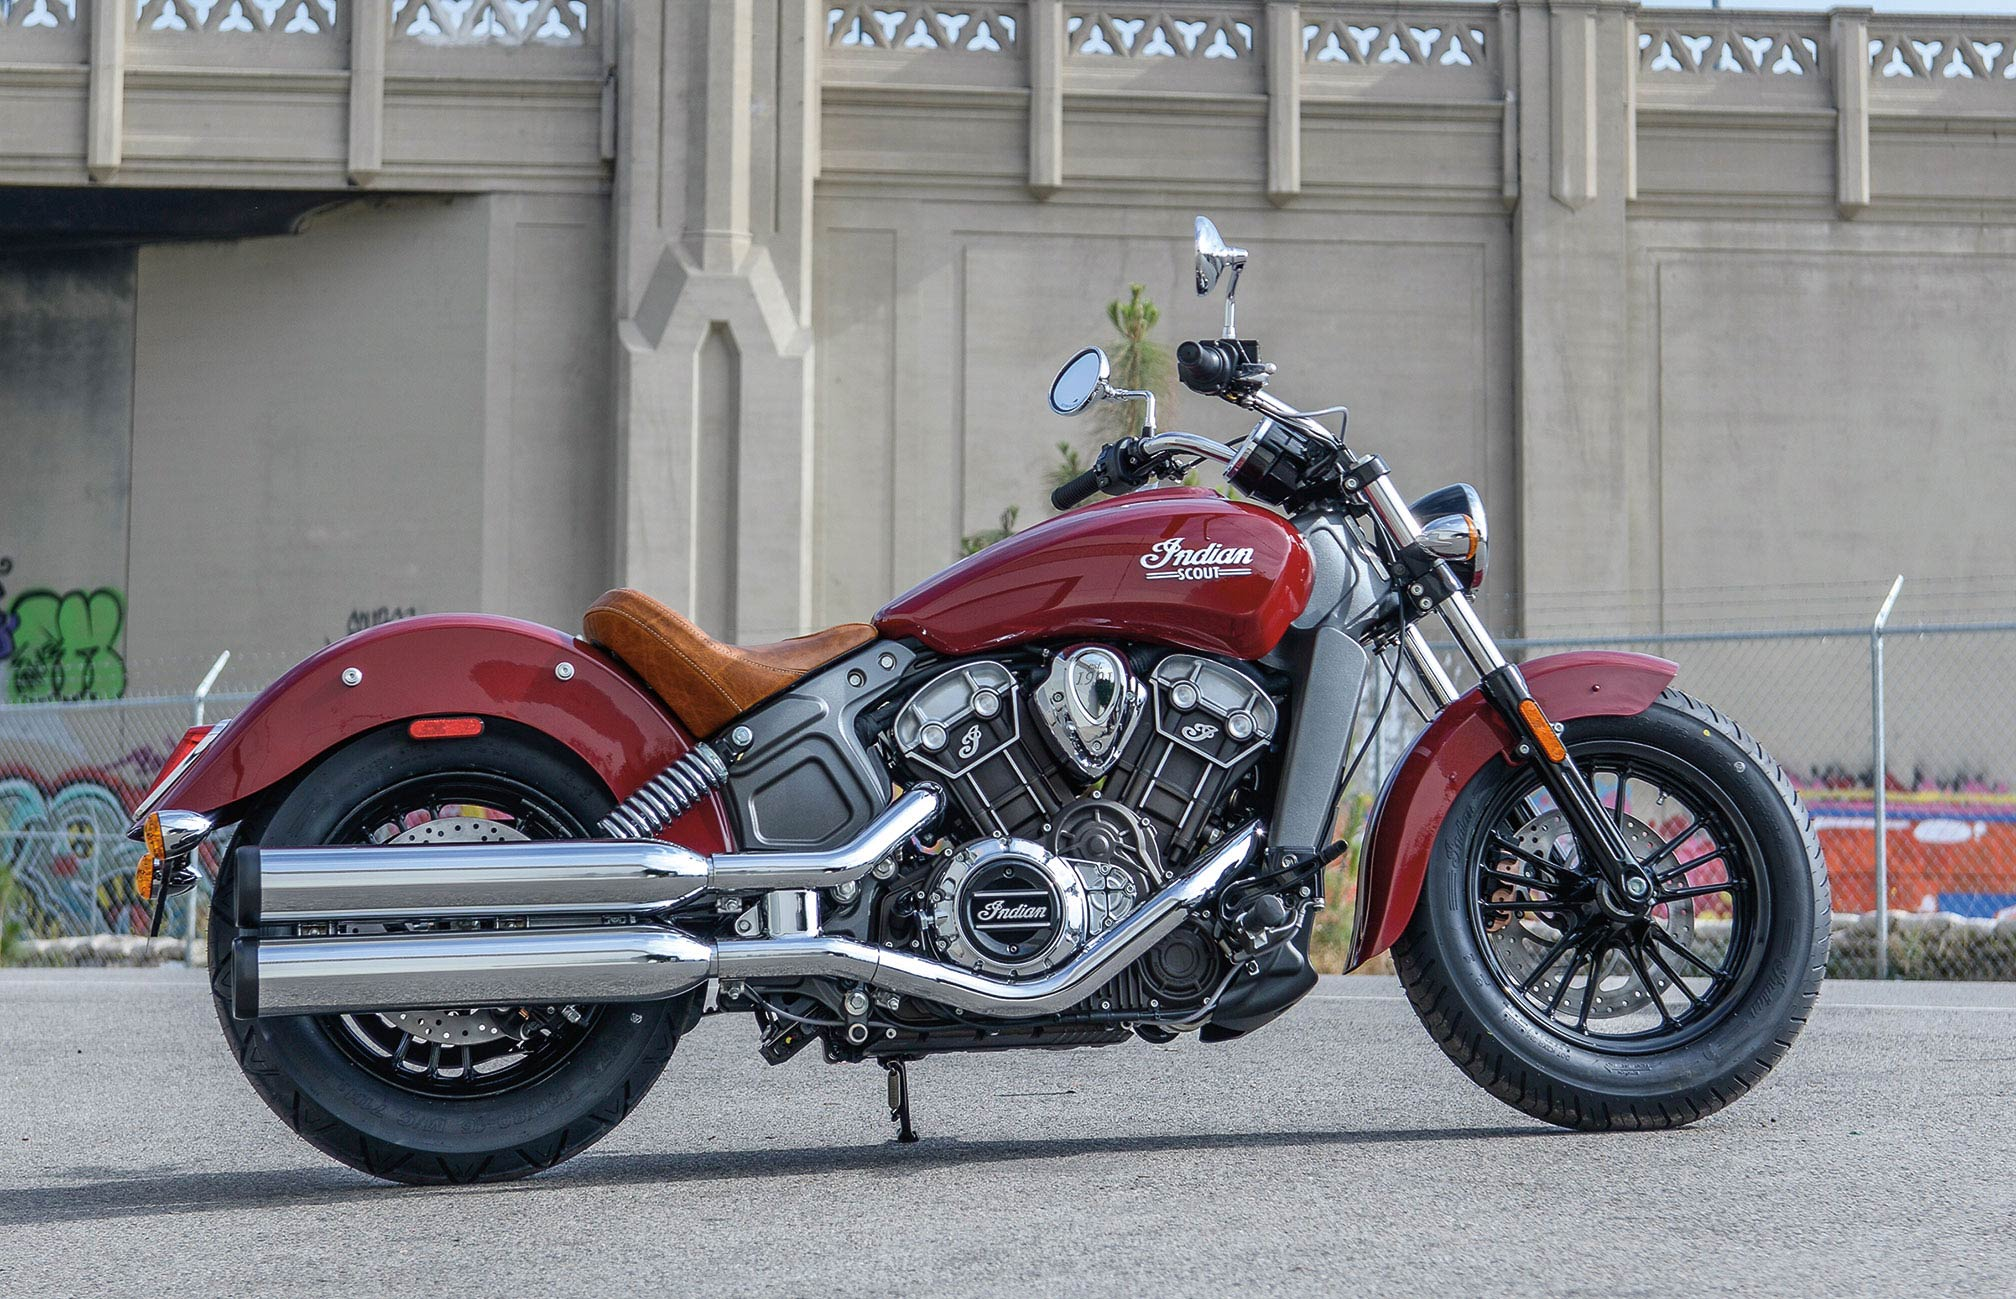 2016 Indian Scout Review